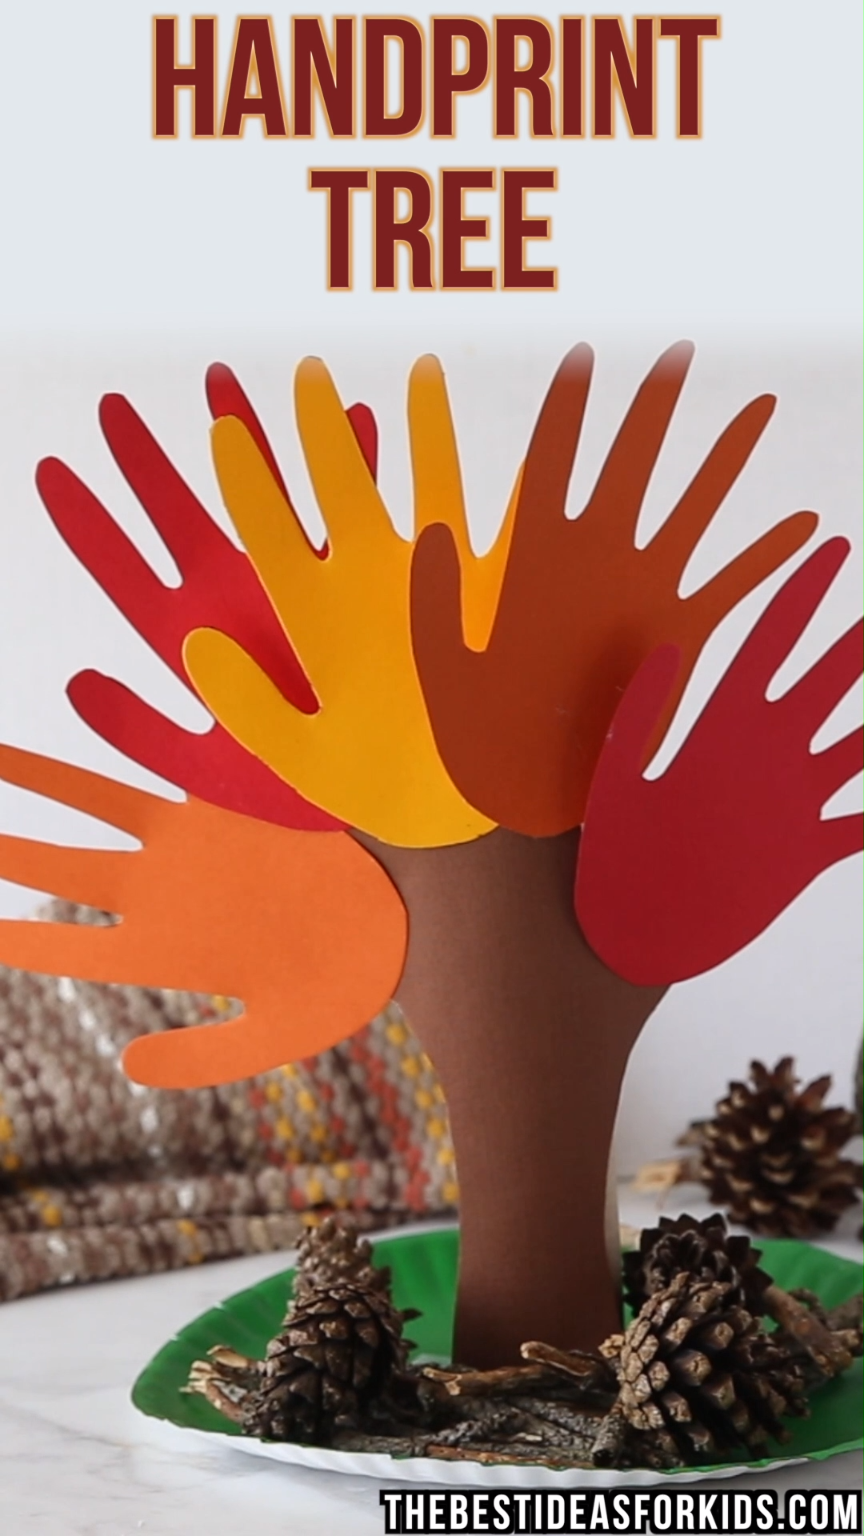 Handprint Tree Handprint Tree Diy Fall Crafts fall crafts diy thanksgiving